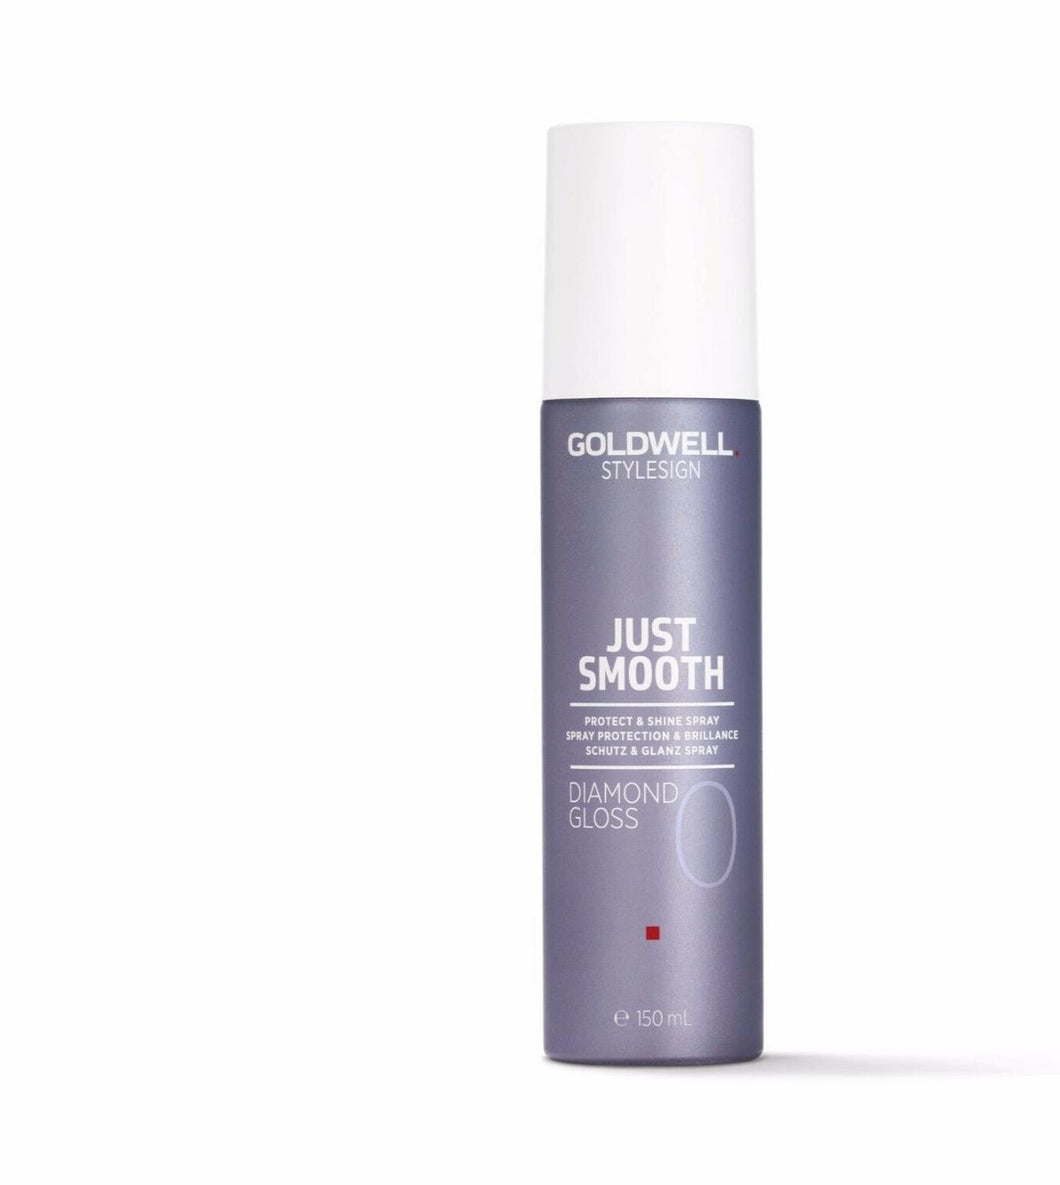 iaahhaircare,GOLDWELL Style Just Smooth Diamond Gloss Protect Shine Spray 150ml x 1 Stylesign,Styling Products,Style Sign